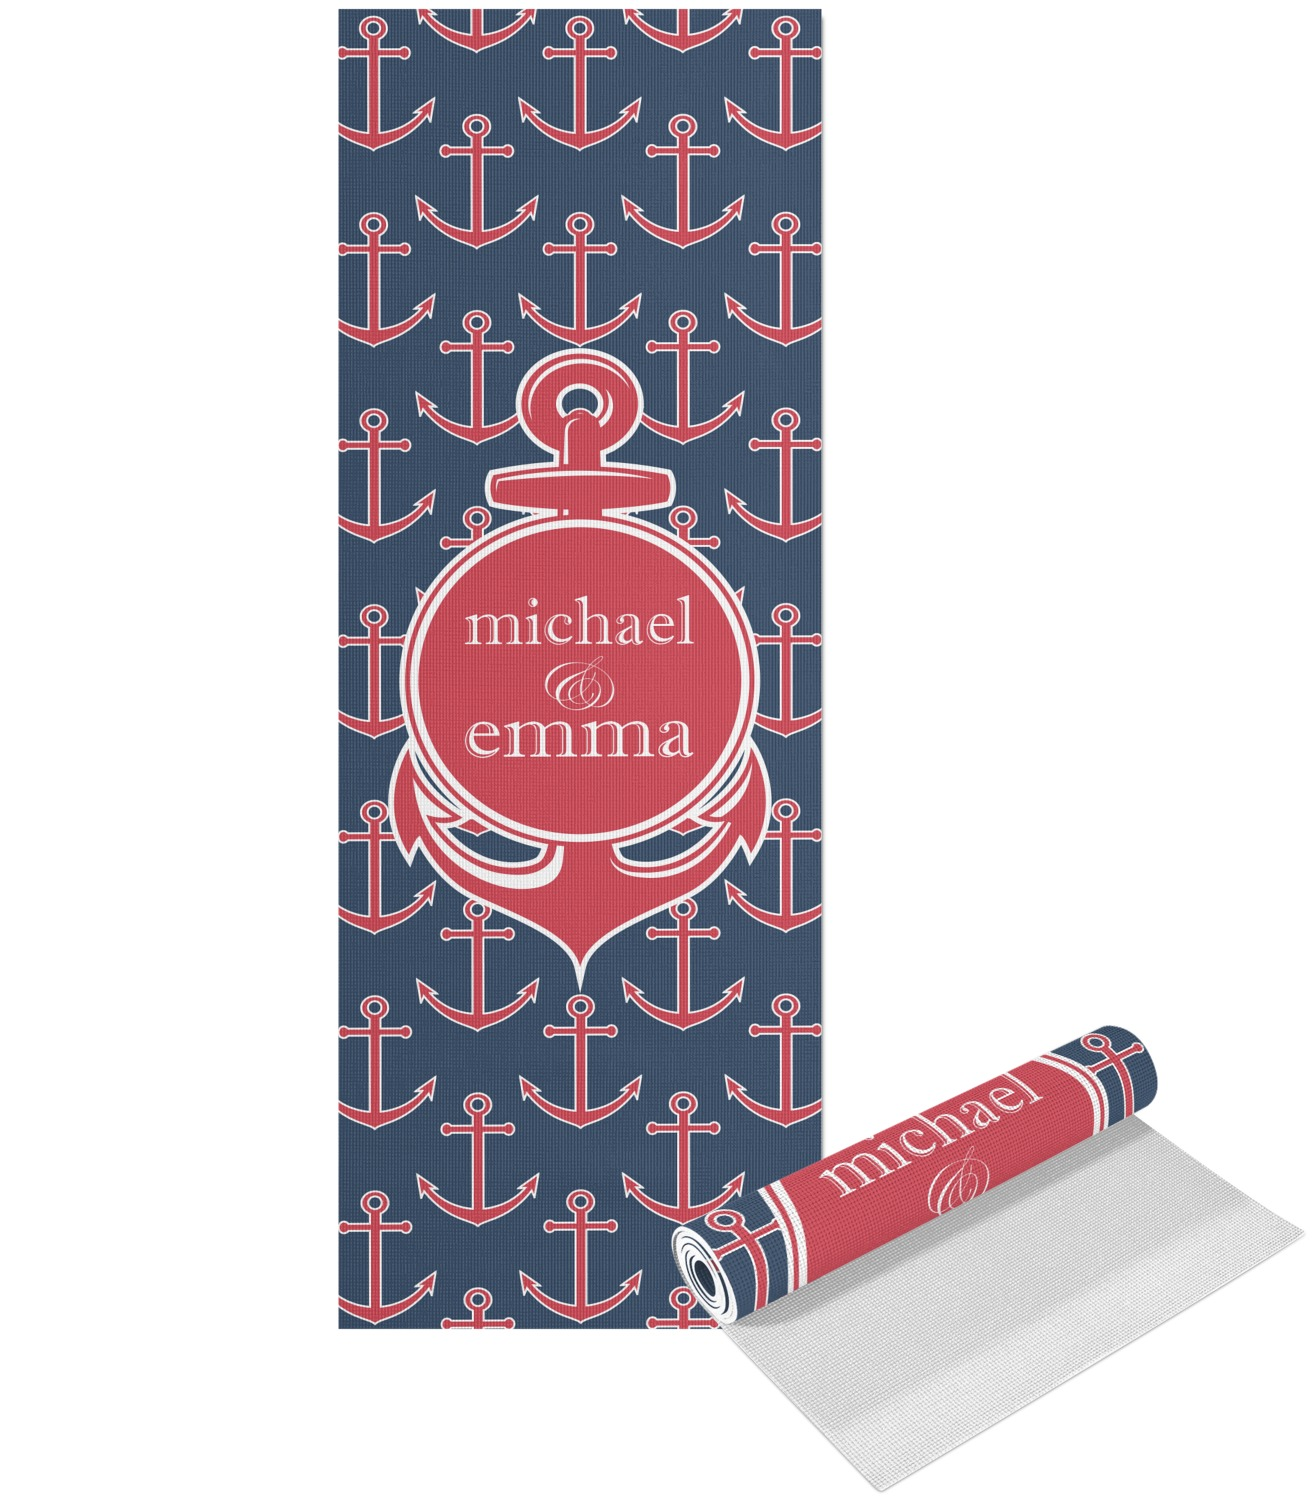 Yoga Mat With Anchors Chevron Anchor Yoga Mat Personalized